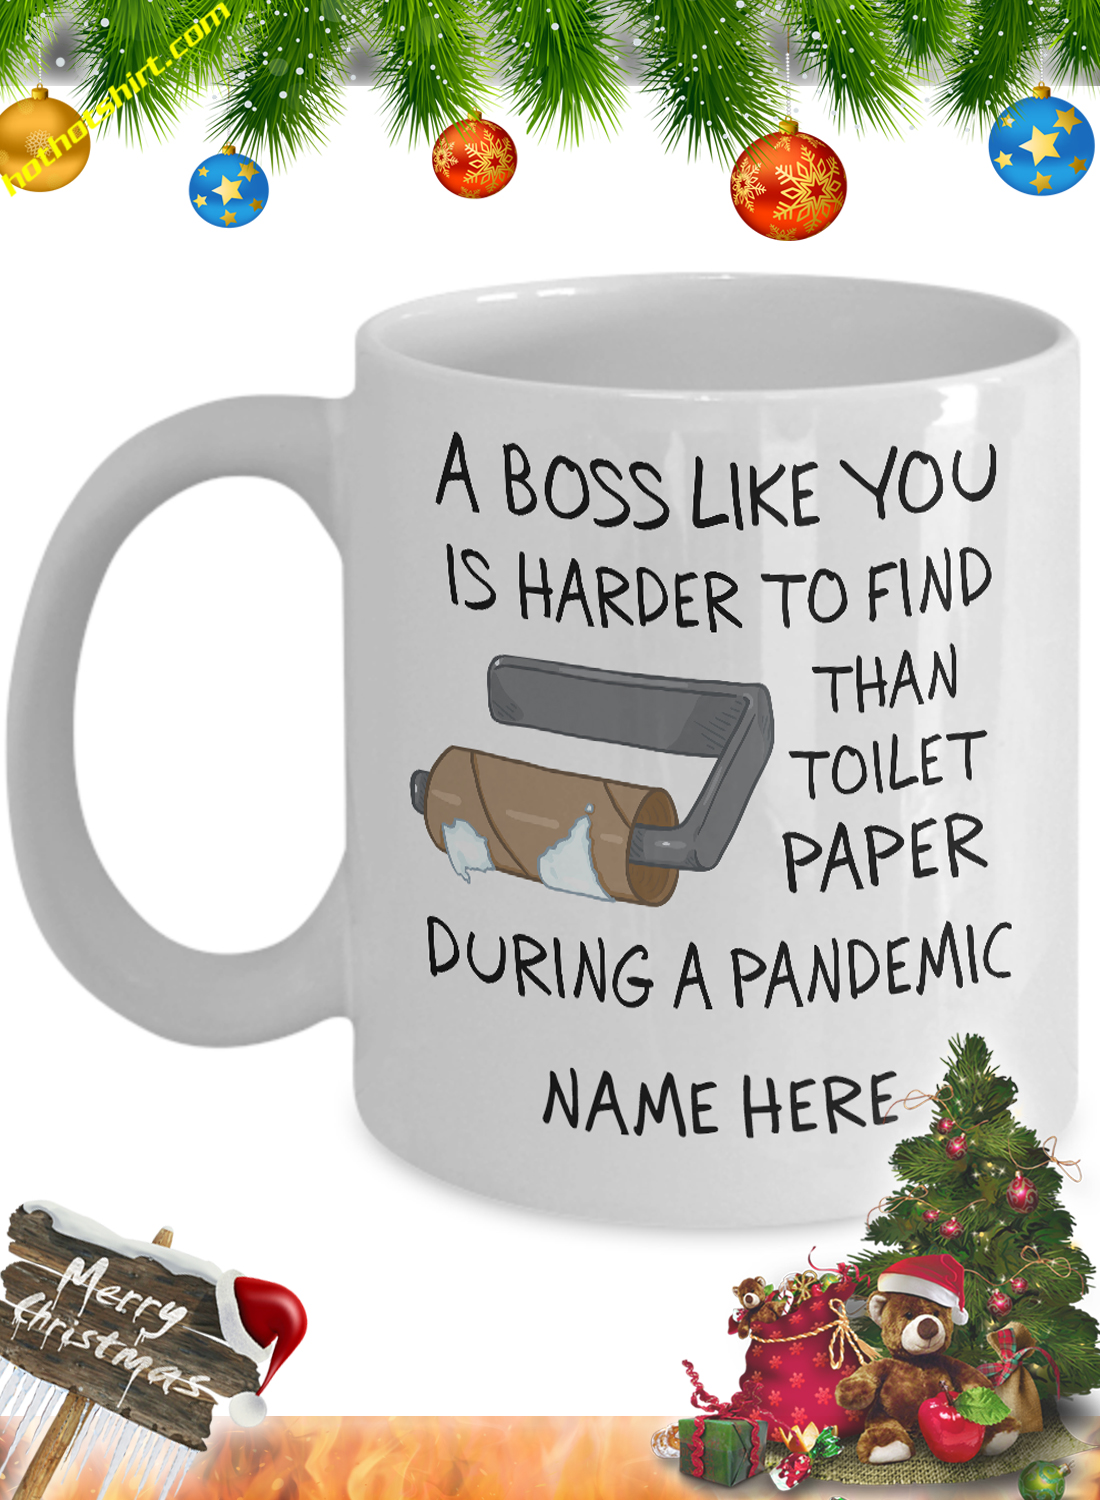 Personalized custom name A boss like you is harder to find than toilet mug